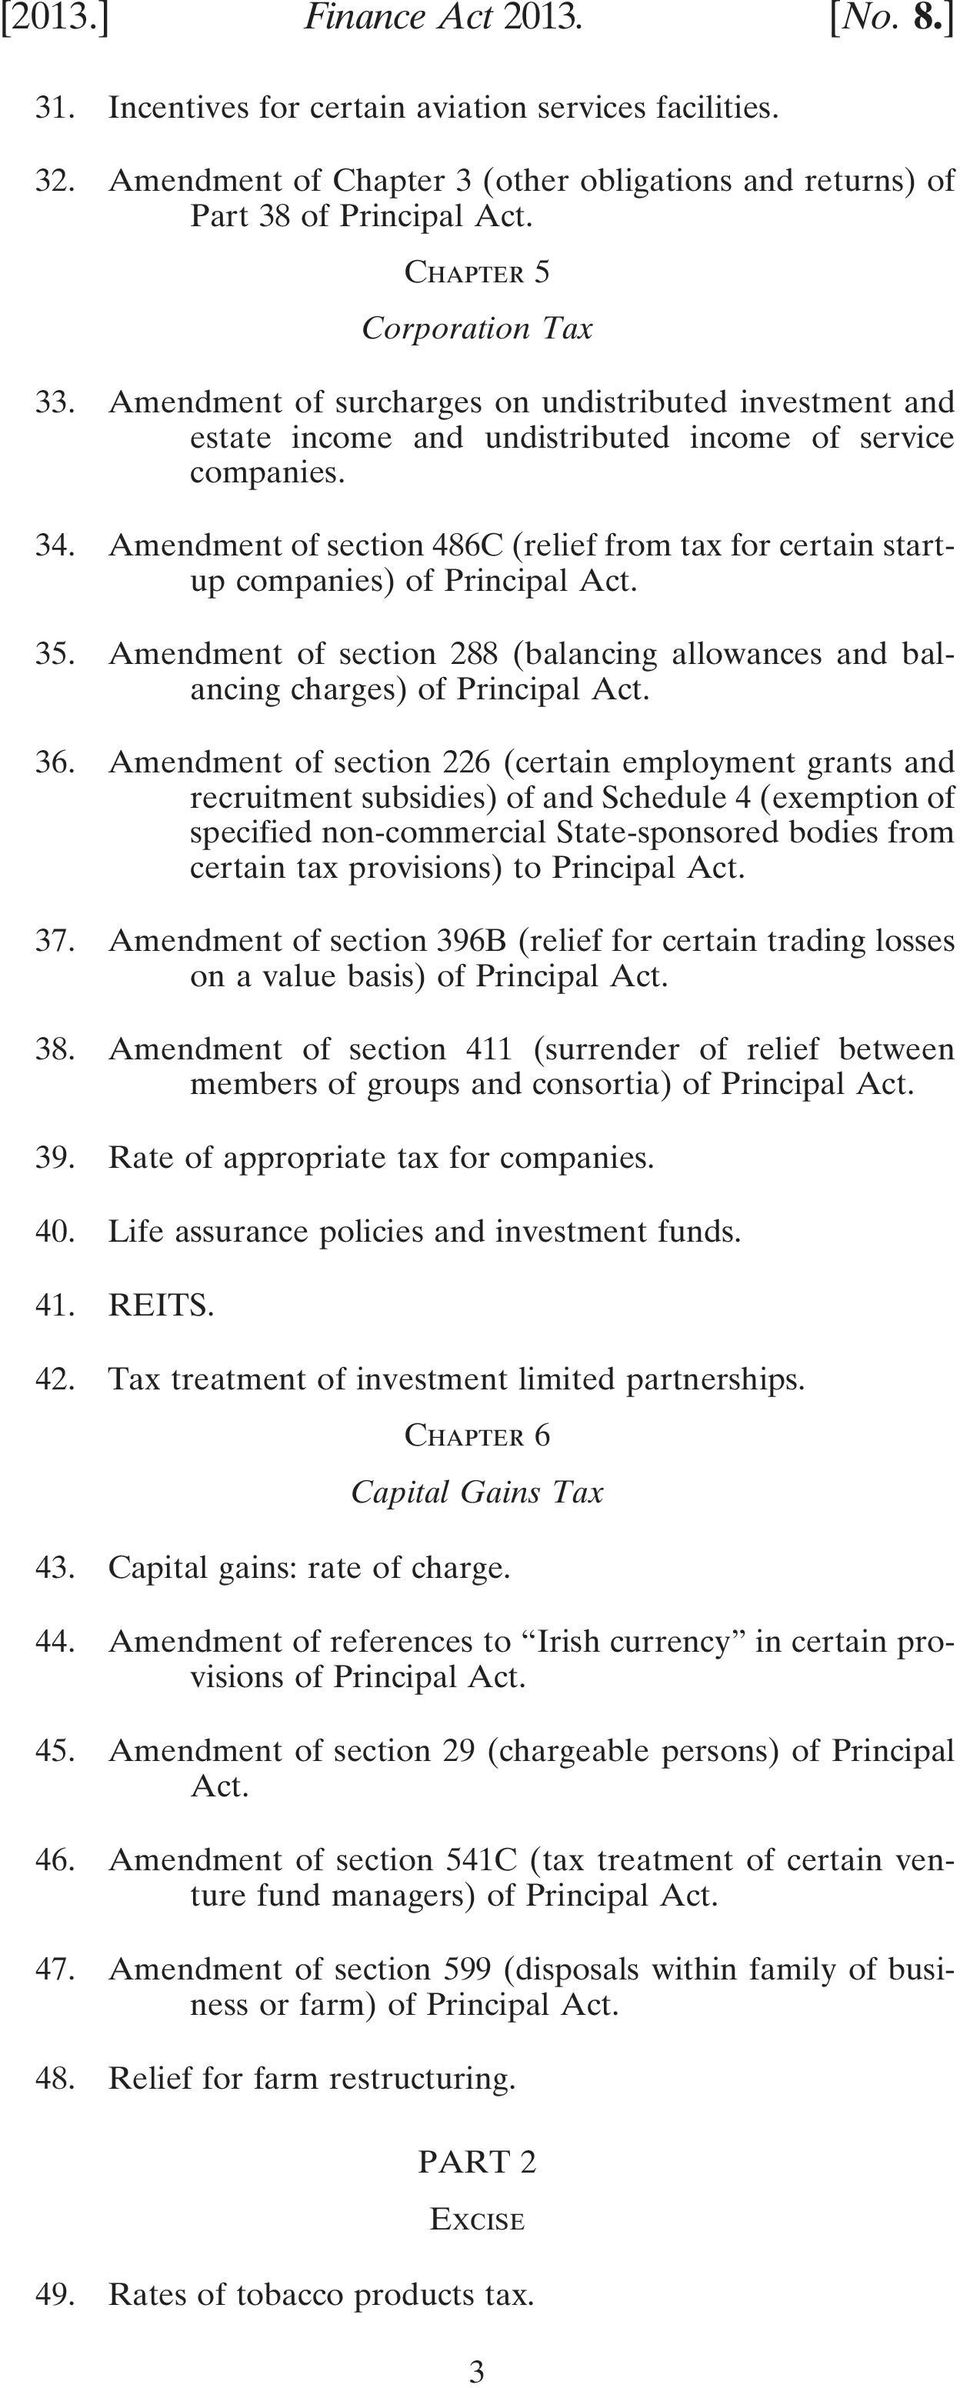 Amendment of section 486C (relief from tax for certain startup companies) of Principal Act. 35. Amendment of section 288 (balancing allowances and balancing charges) of Principal Act. 36.